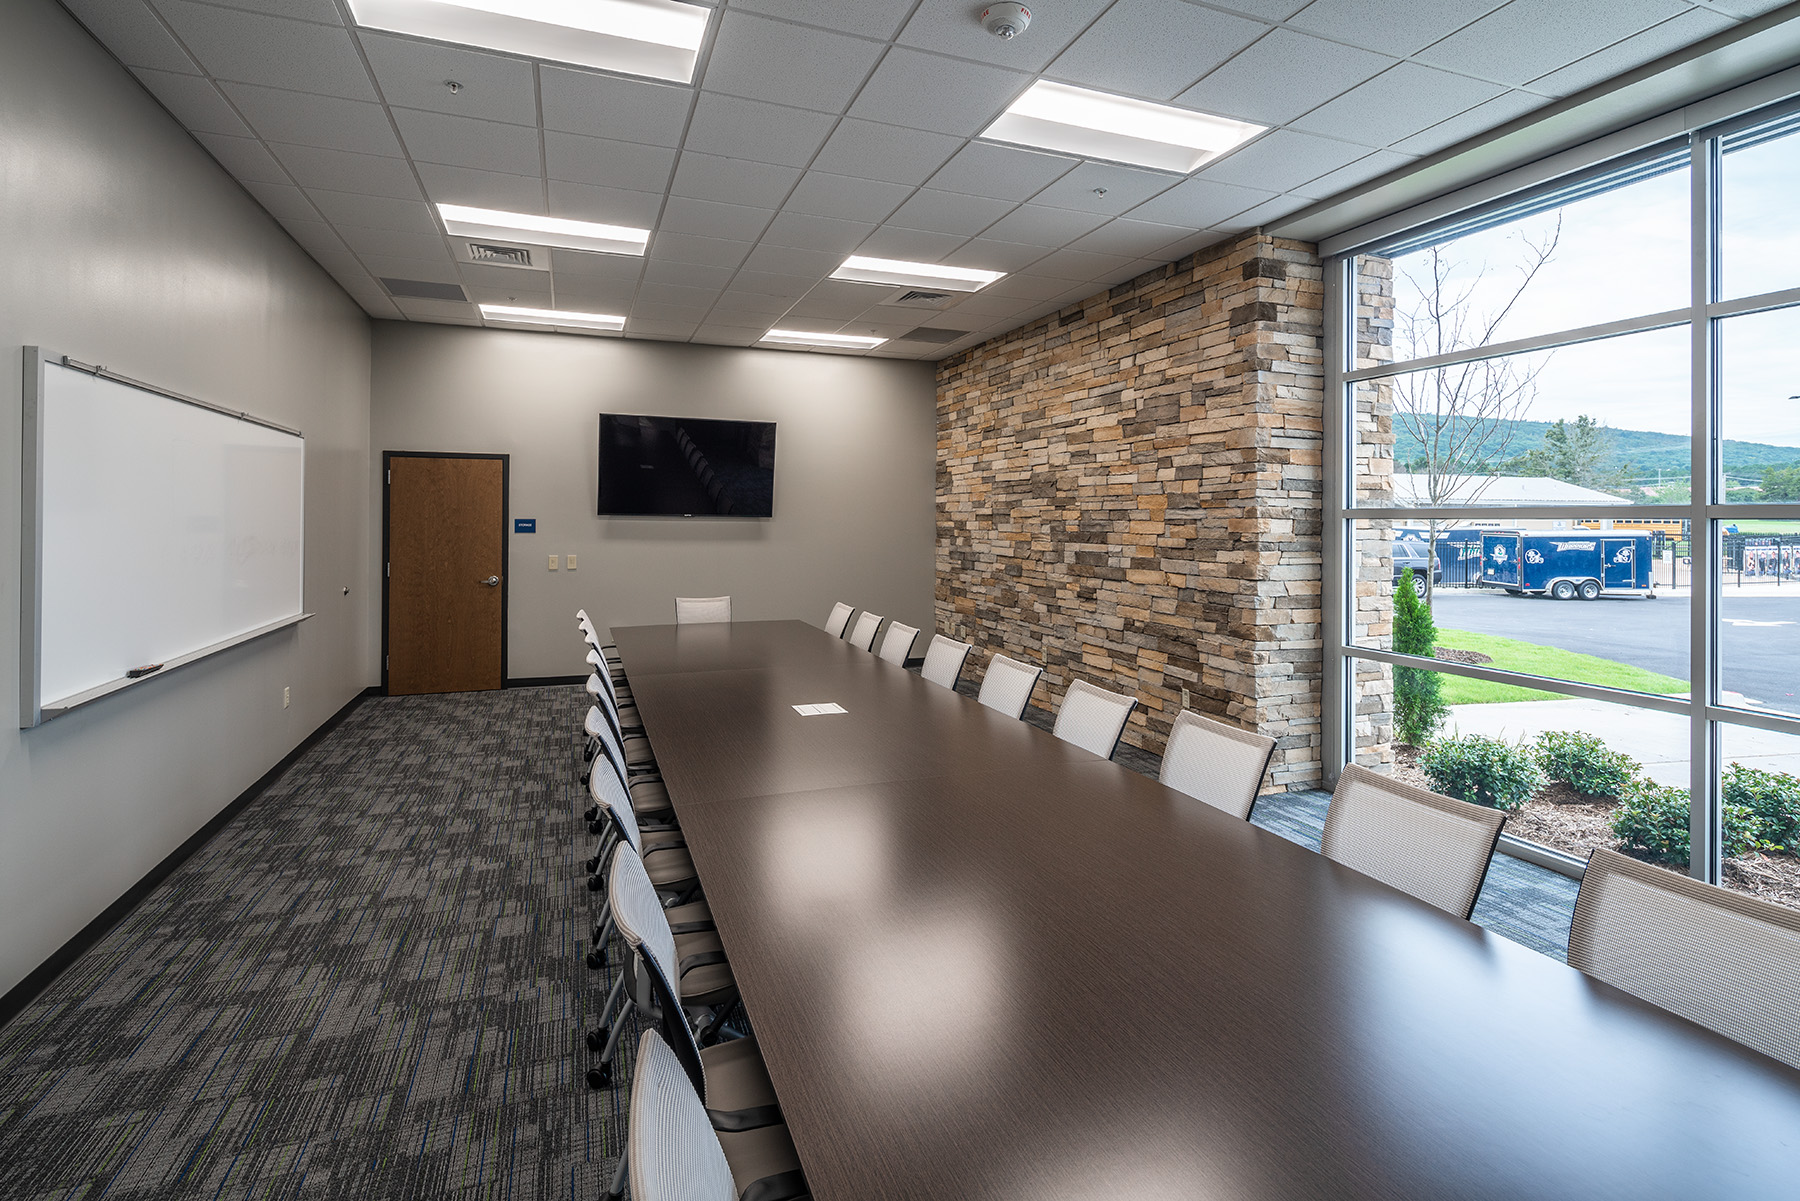 Little Rock Christian Academy Warrior Athletics – Conference Room